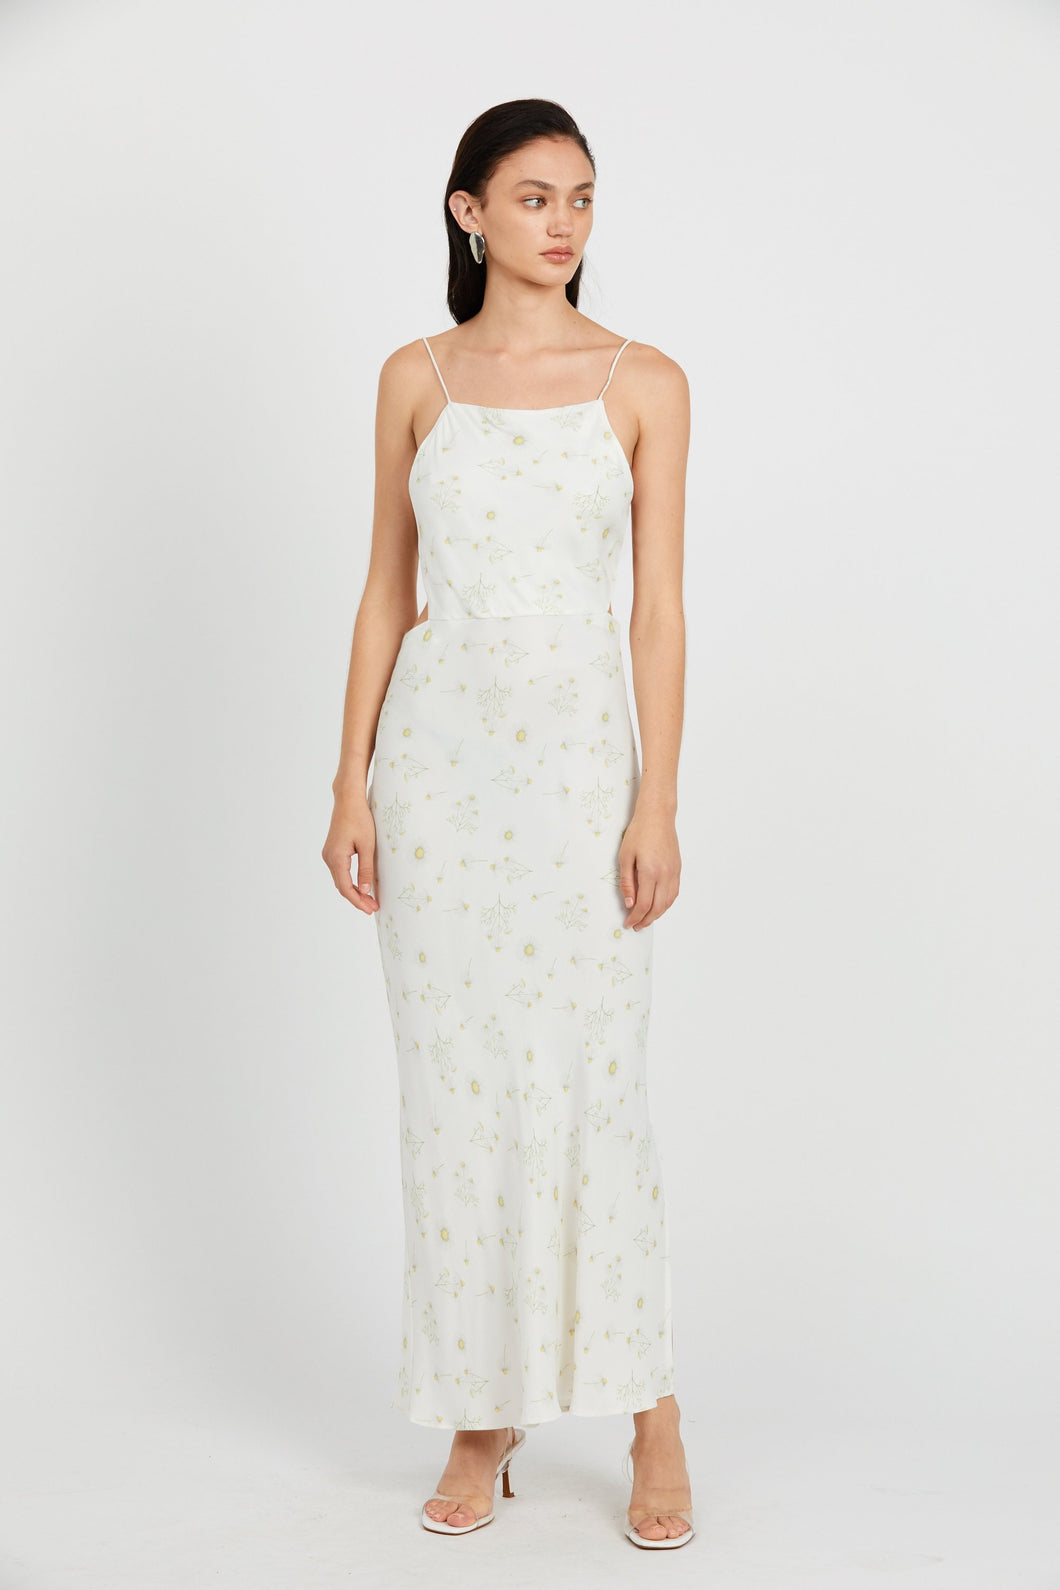 Third Form Wild Flowers Midi